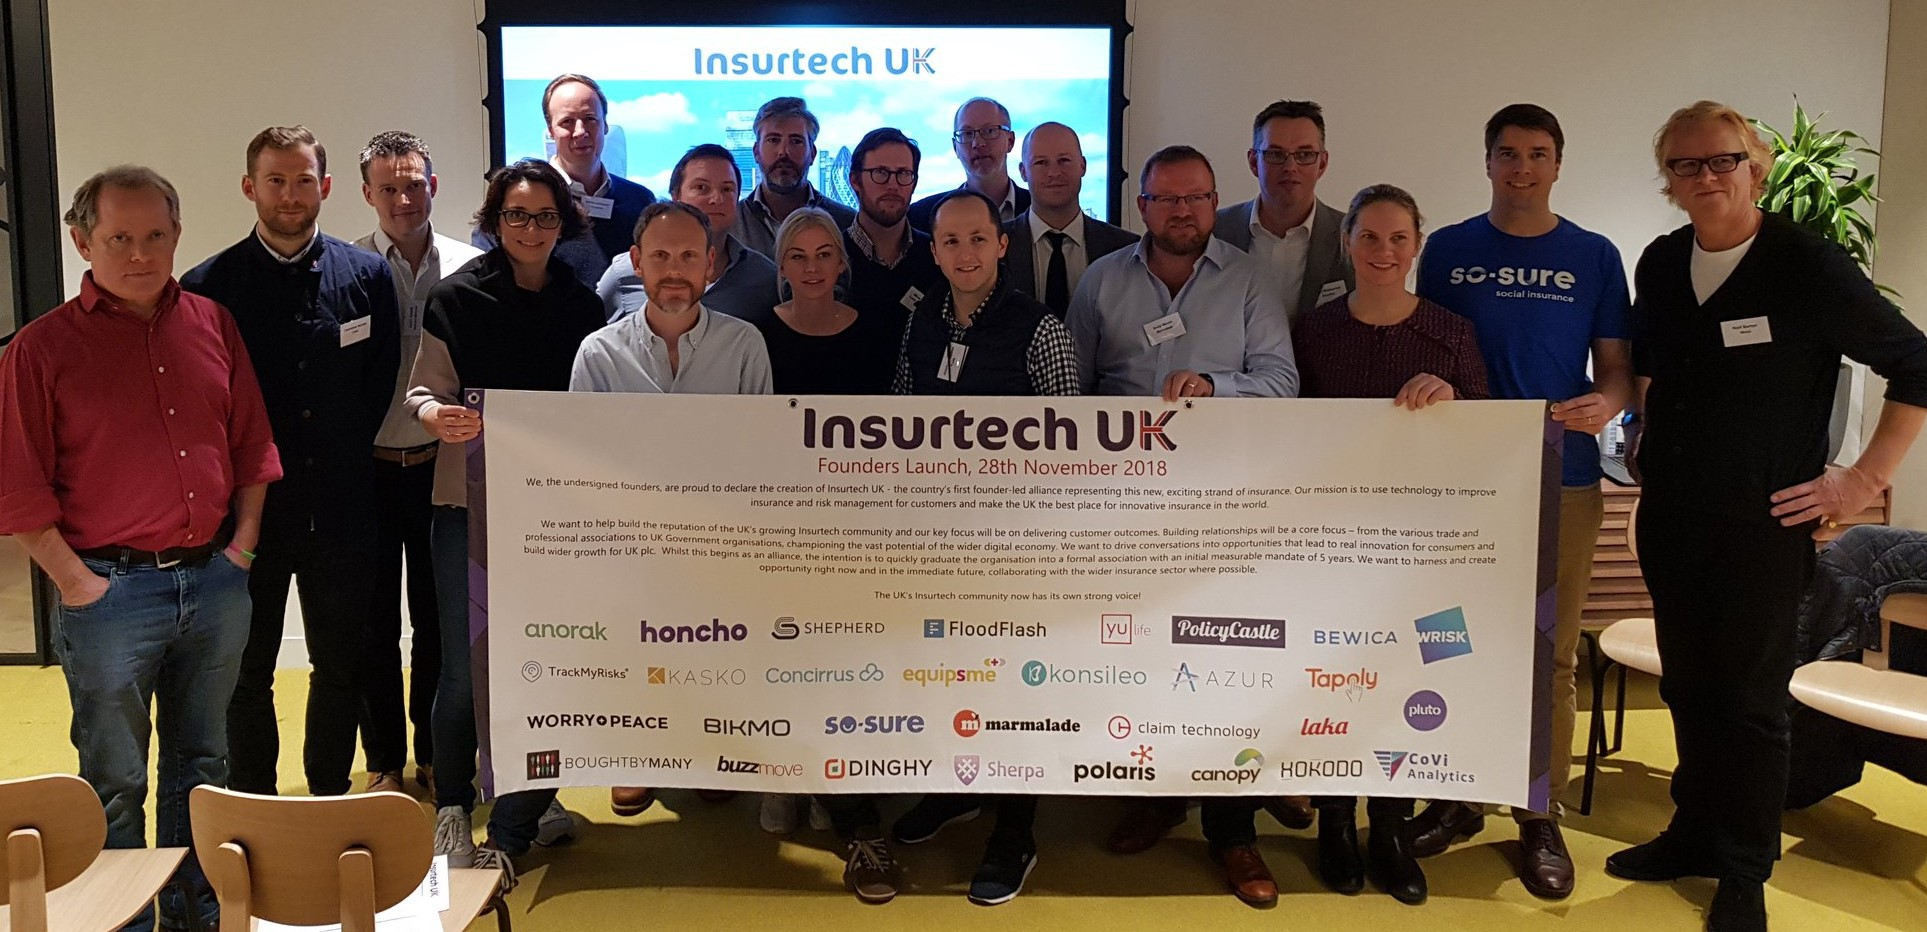 hokodo joins esteemed group of founders for Insurtech UK